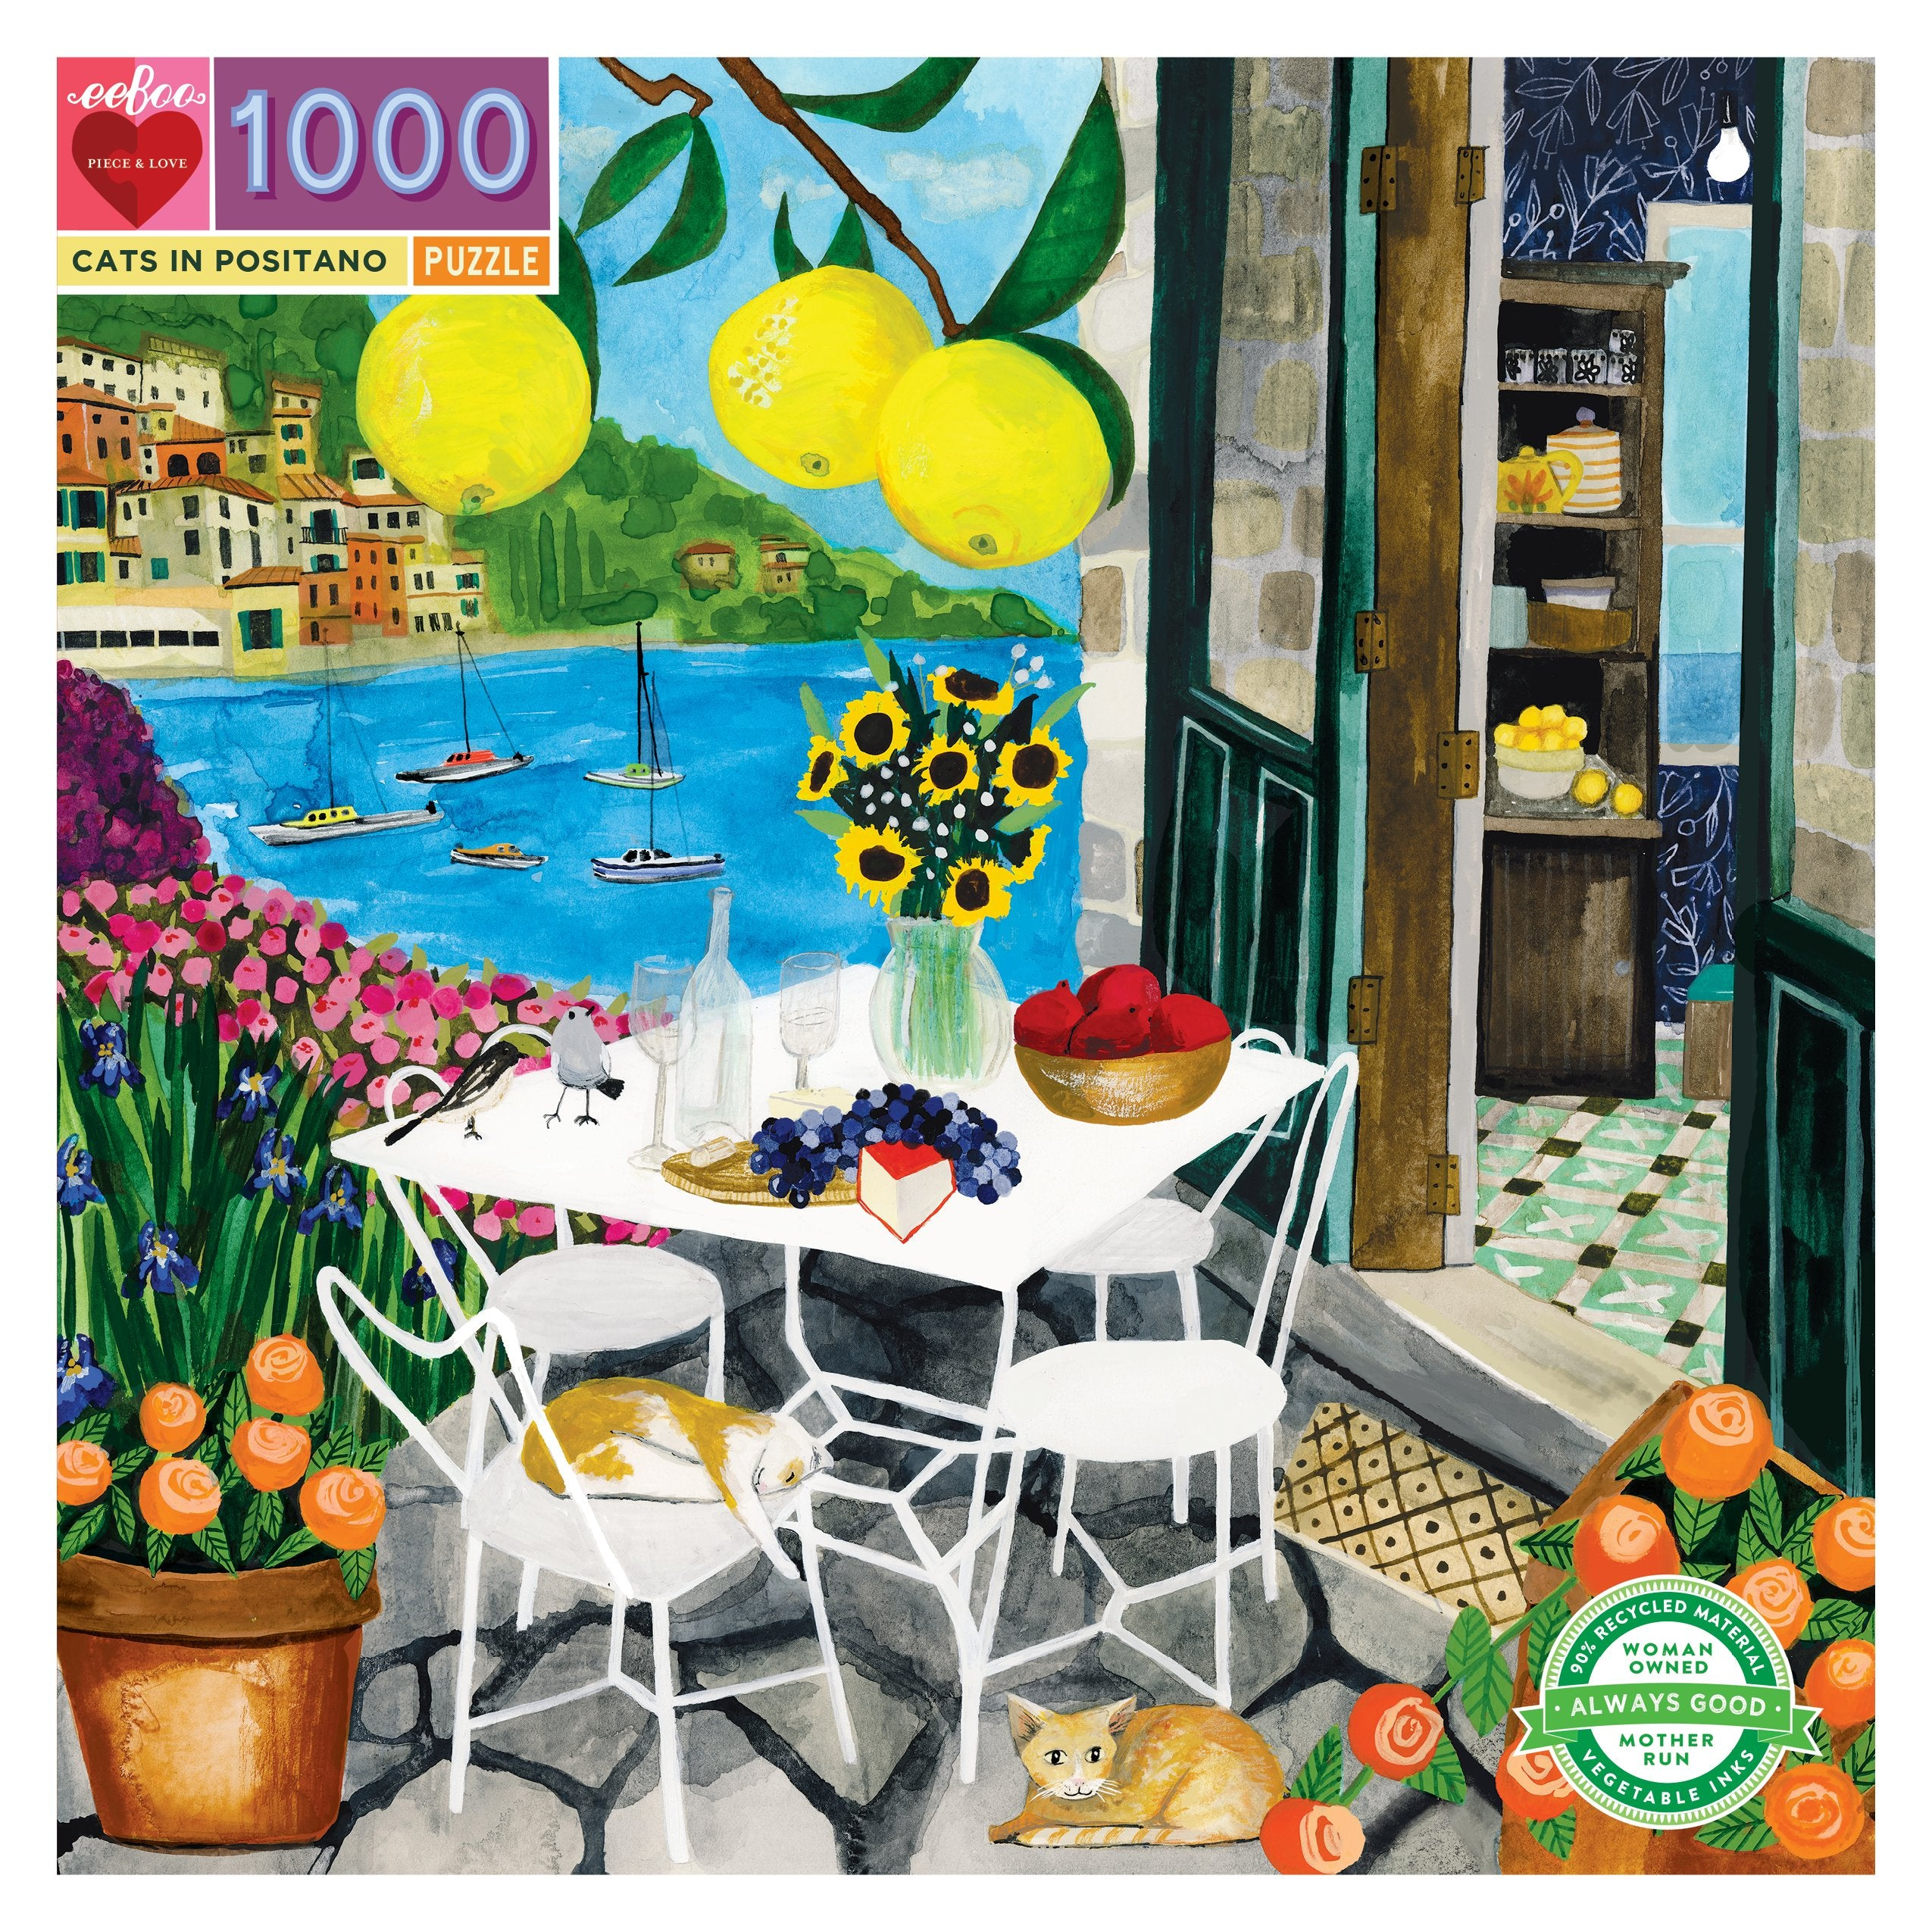 NEW! Cats in Positano Puzzle